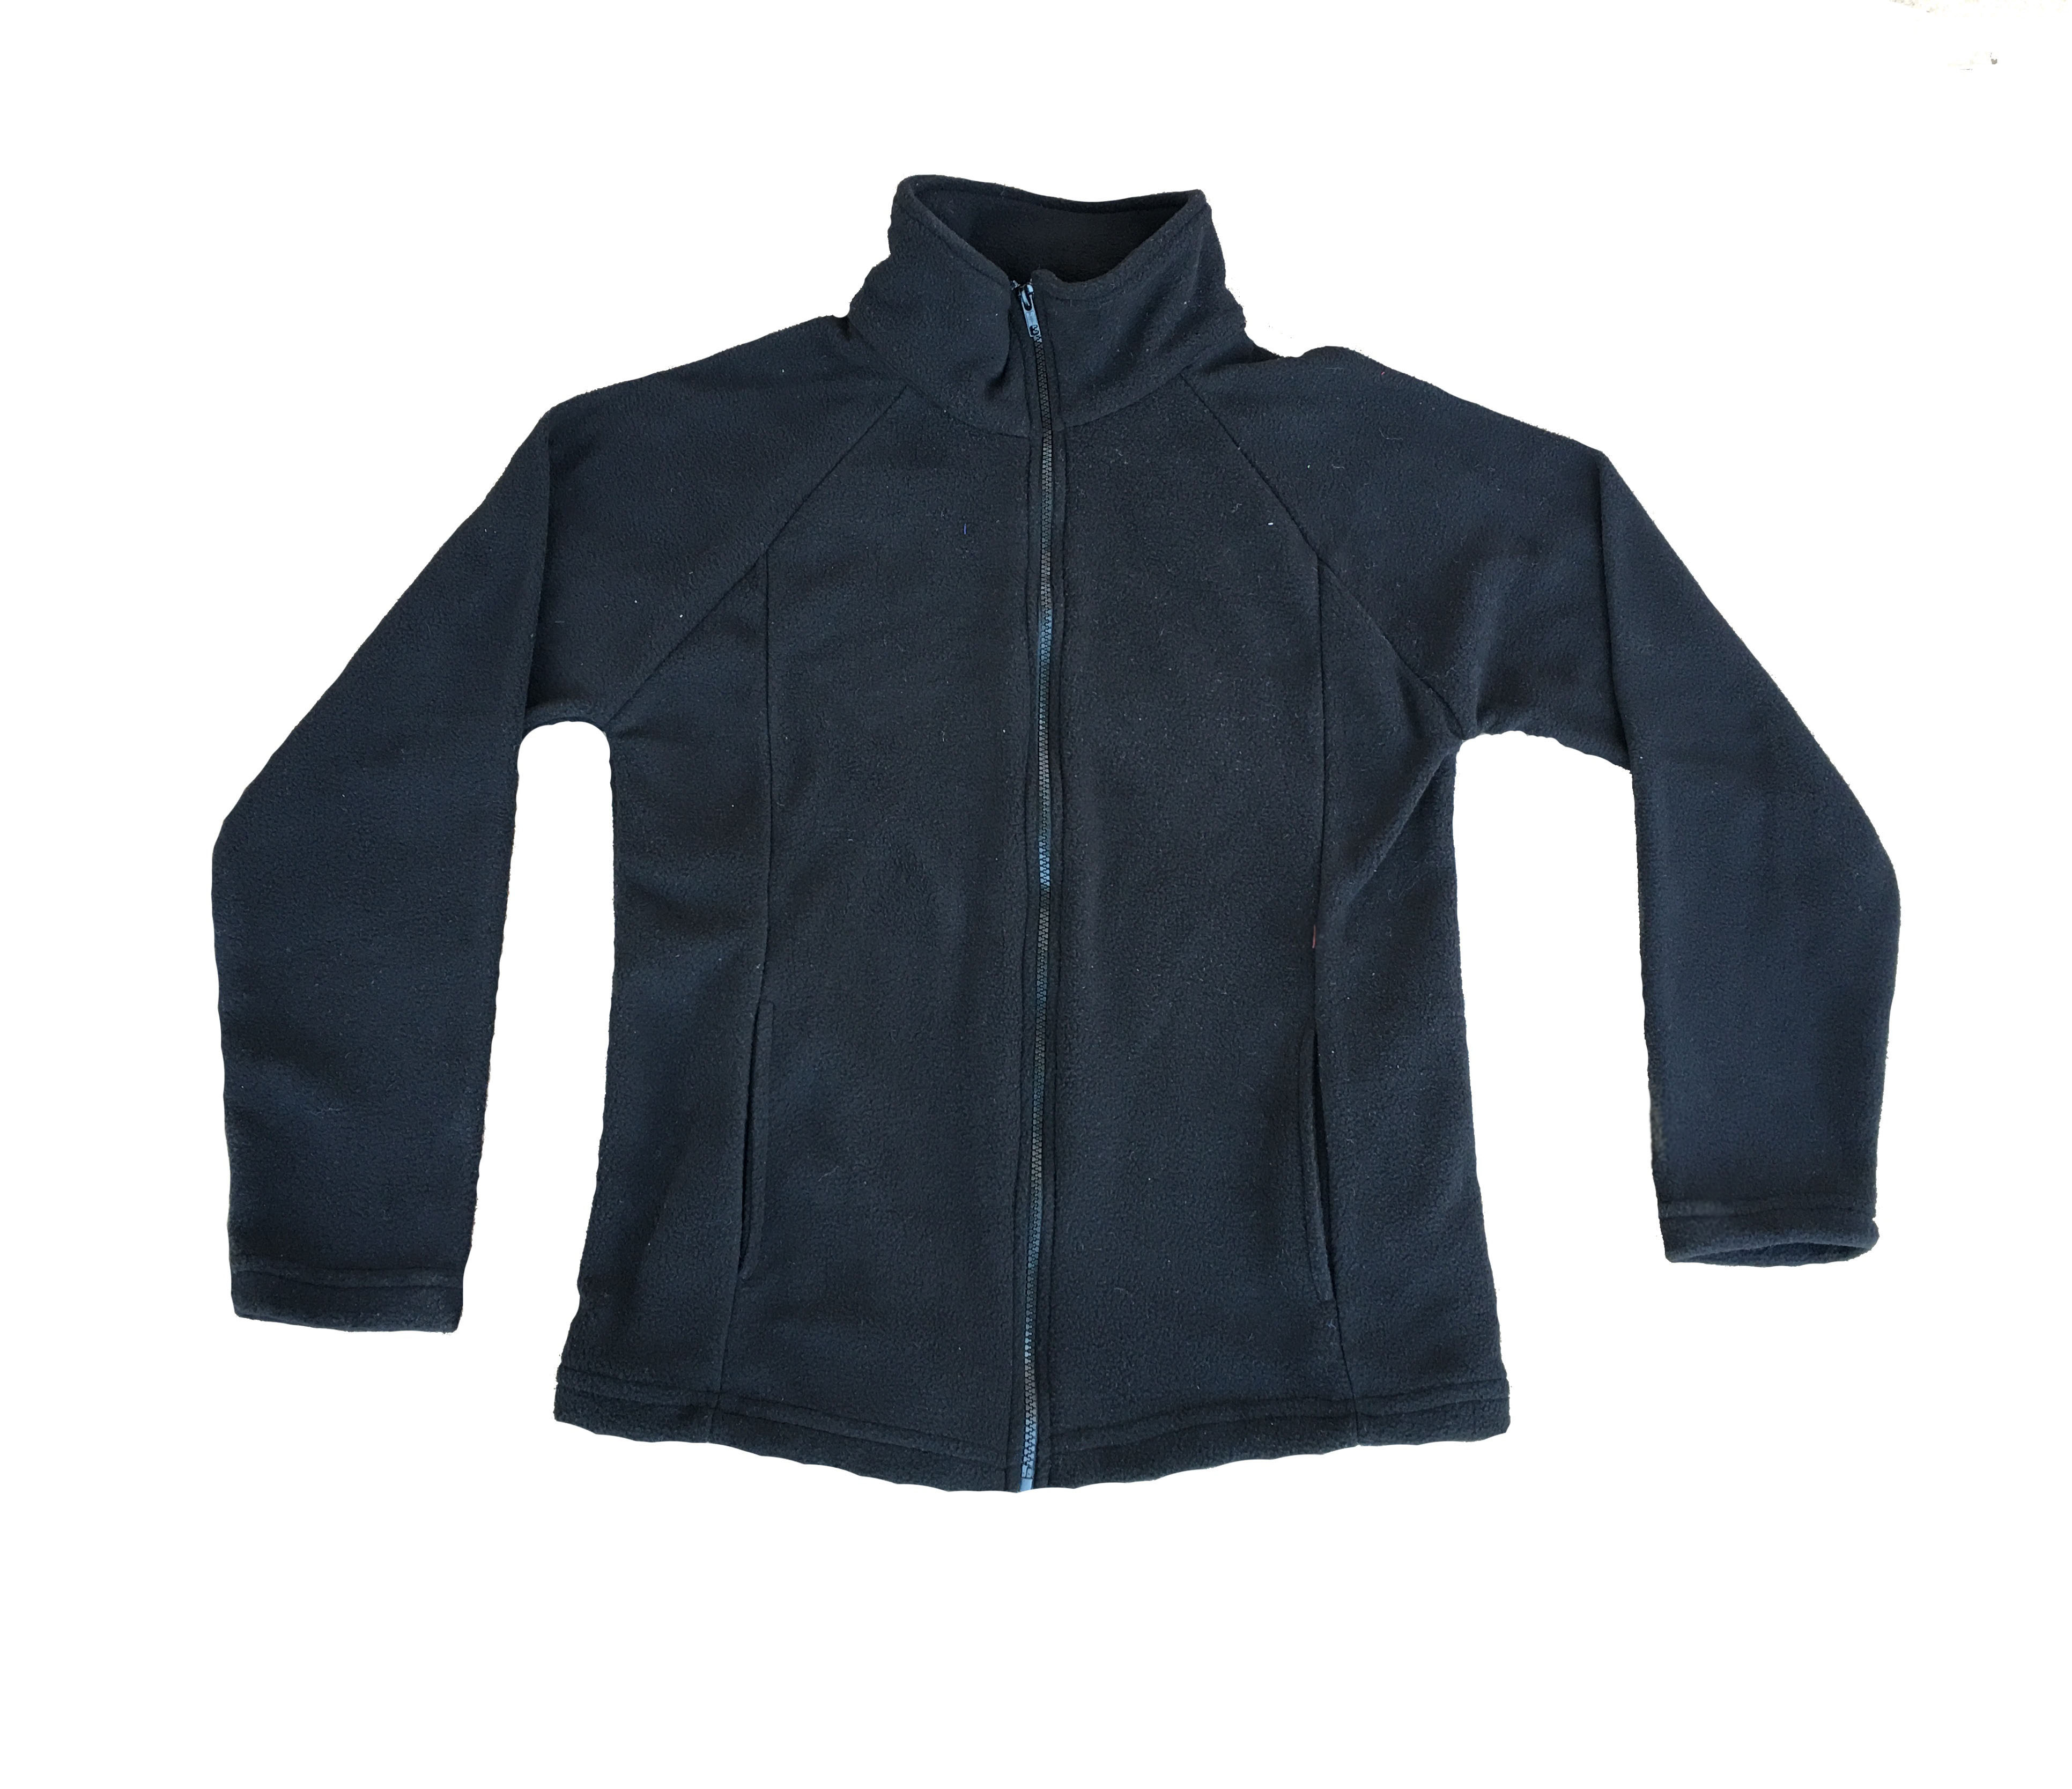 LADIES POLAR FLEECE JACKET FULL ZIP